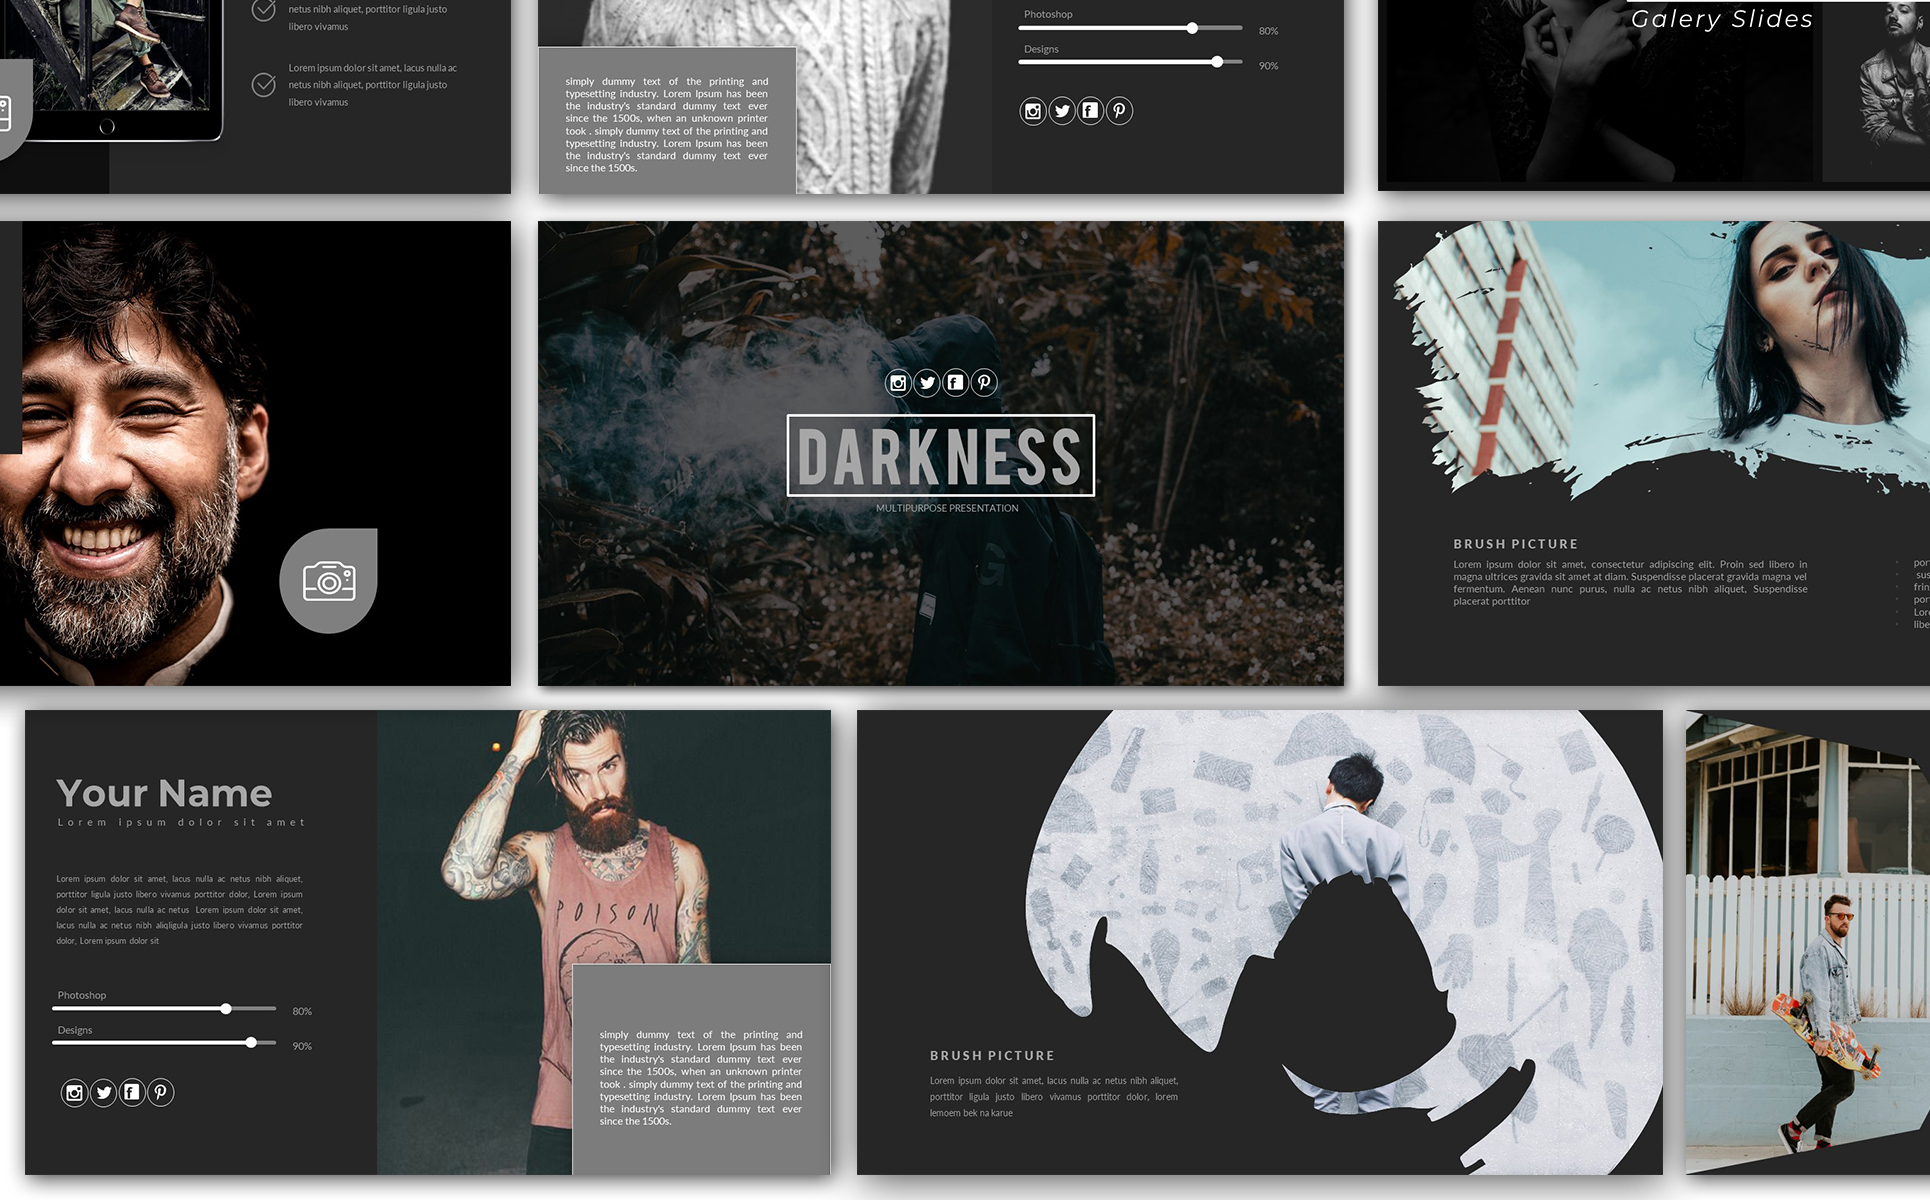 Darkness Presentation PowerPoint Template